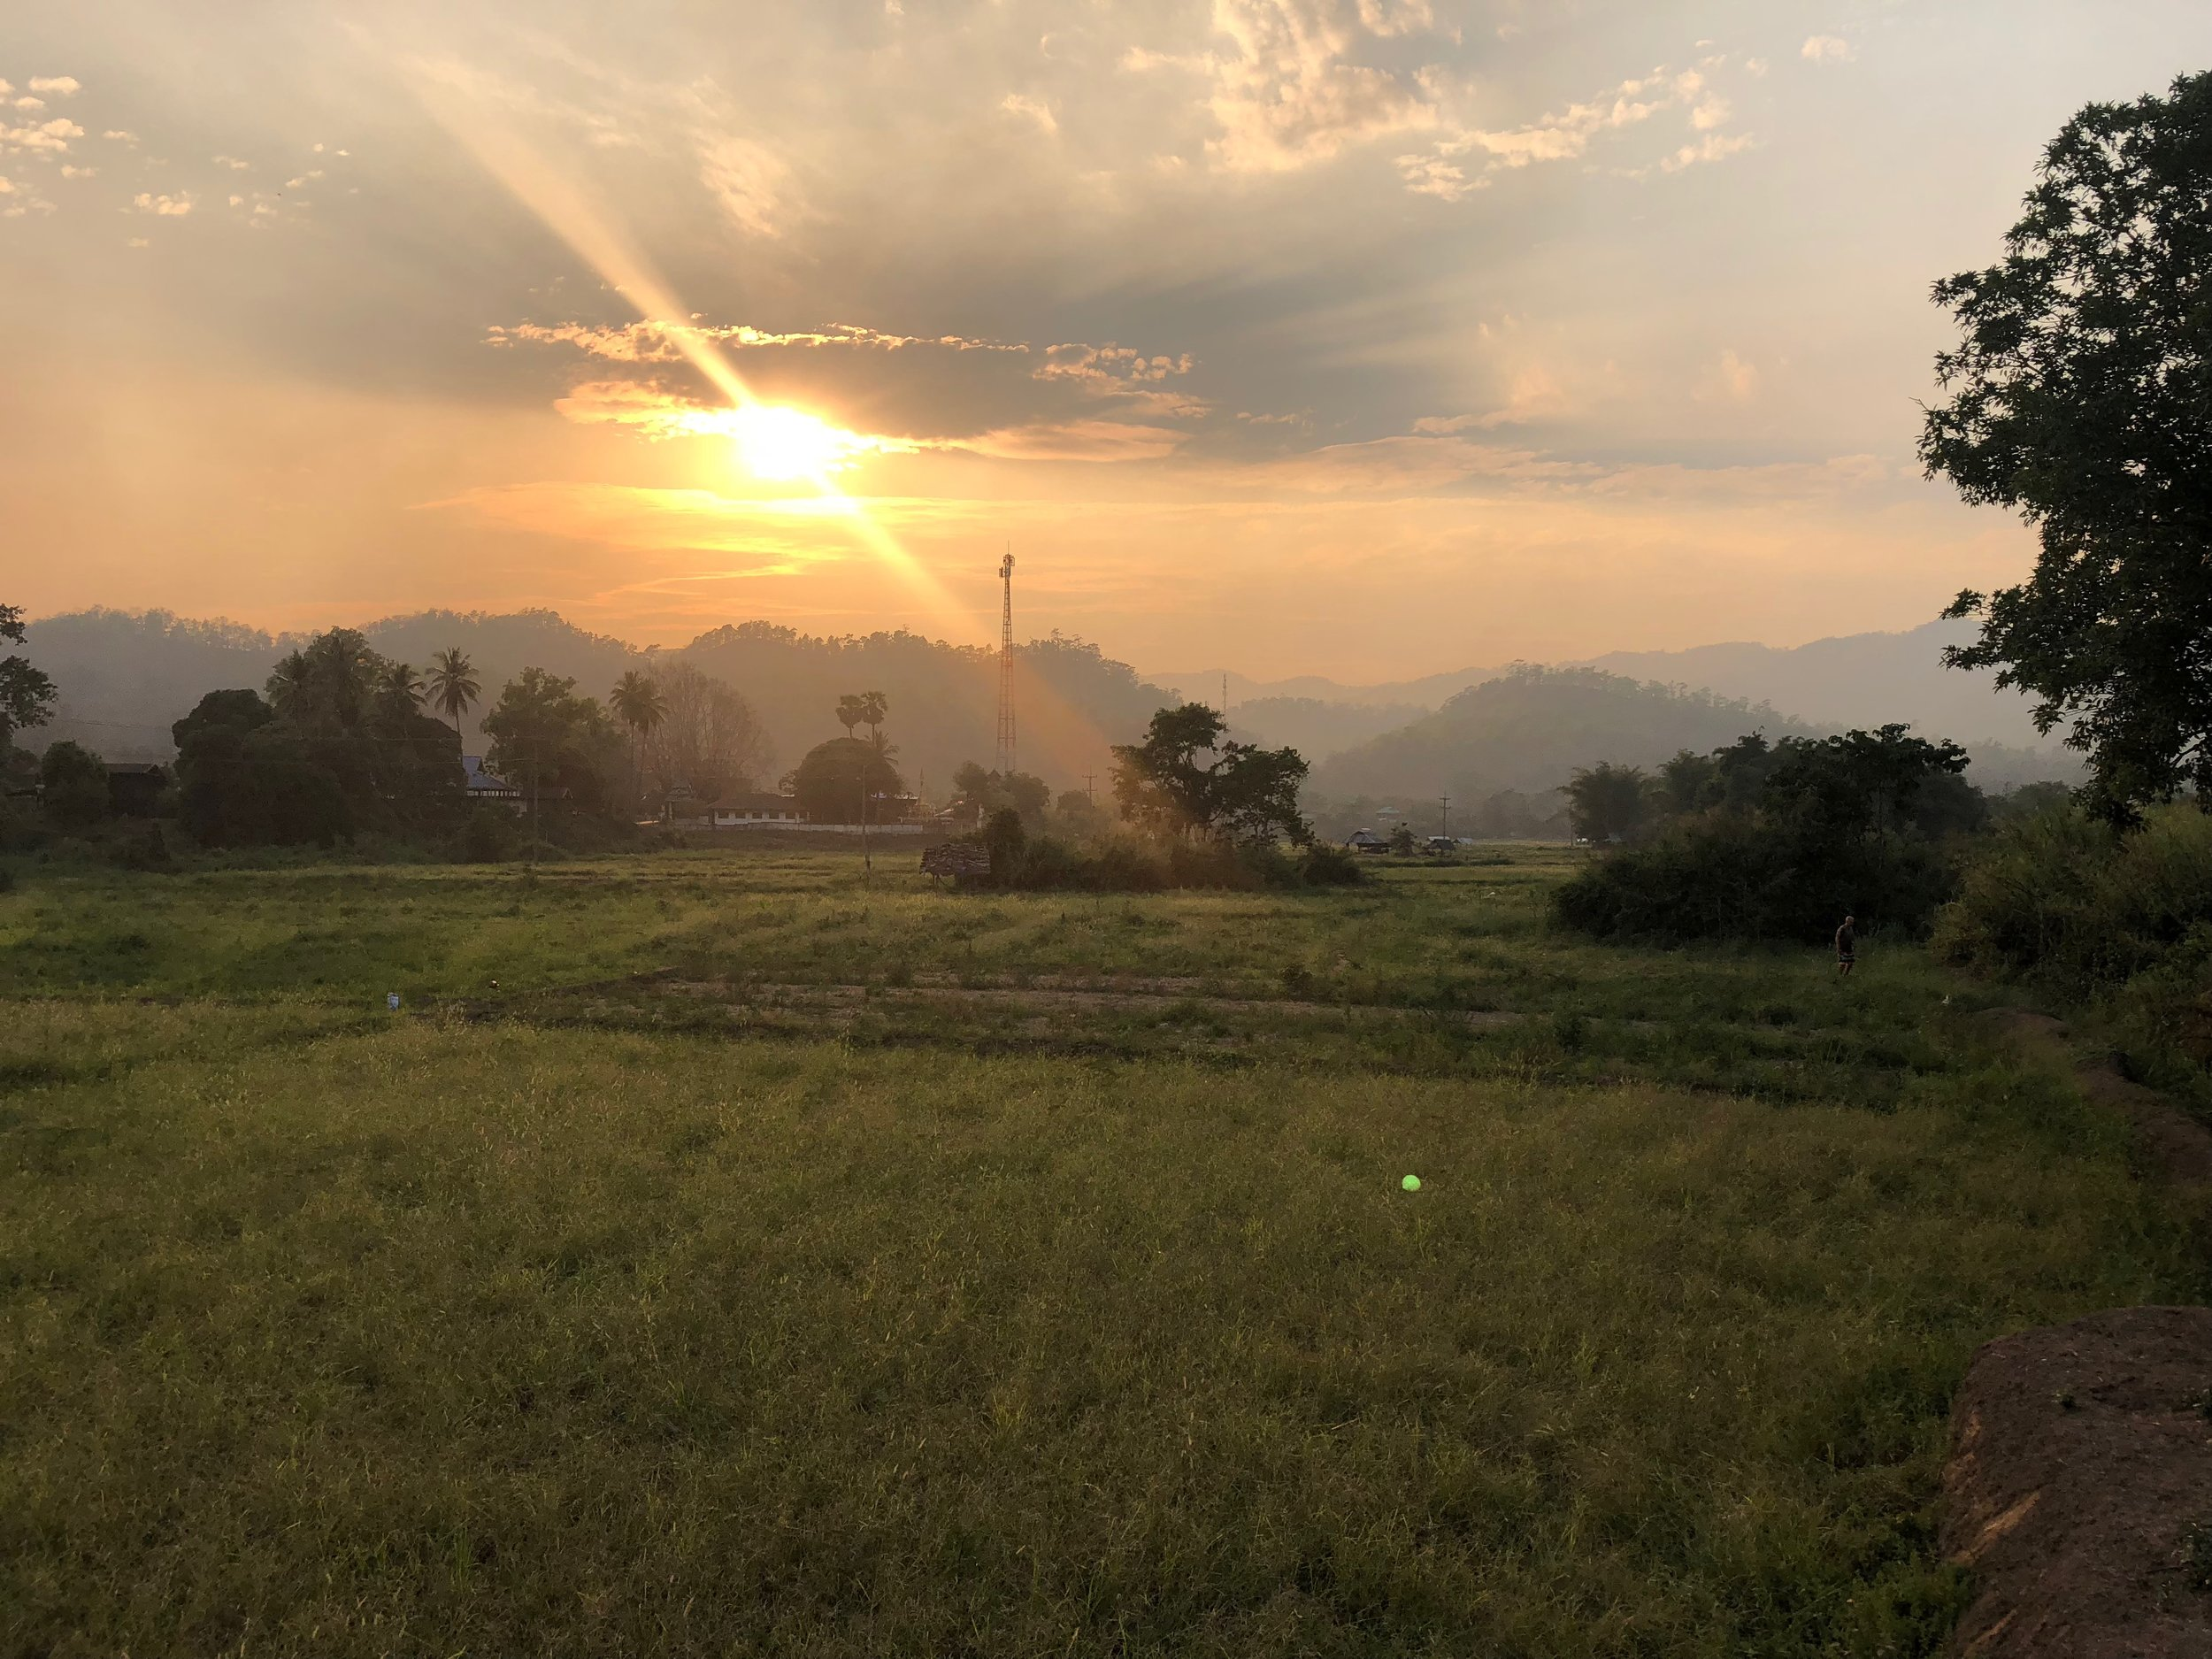 Sunset over the rice fields....